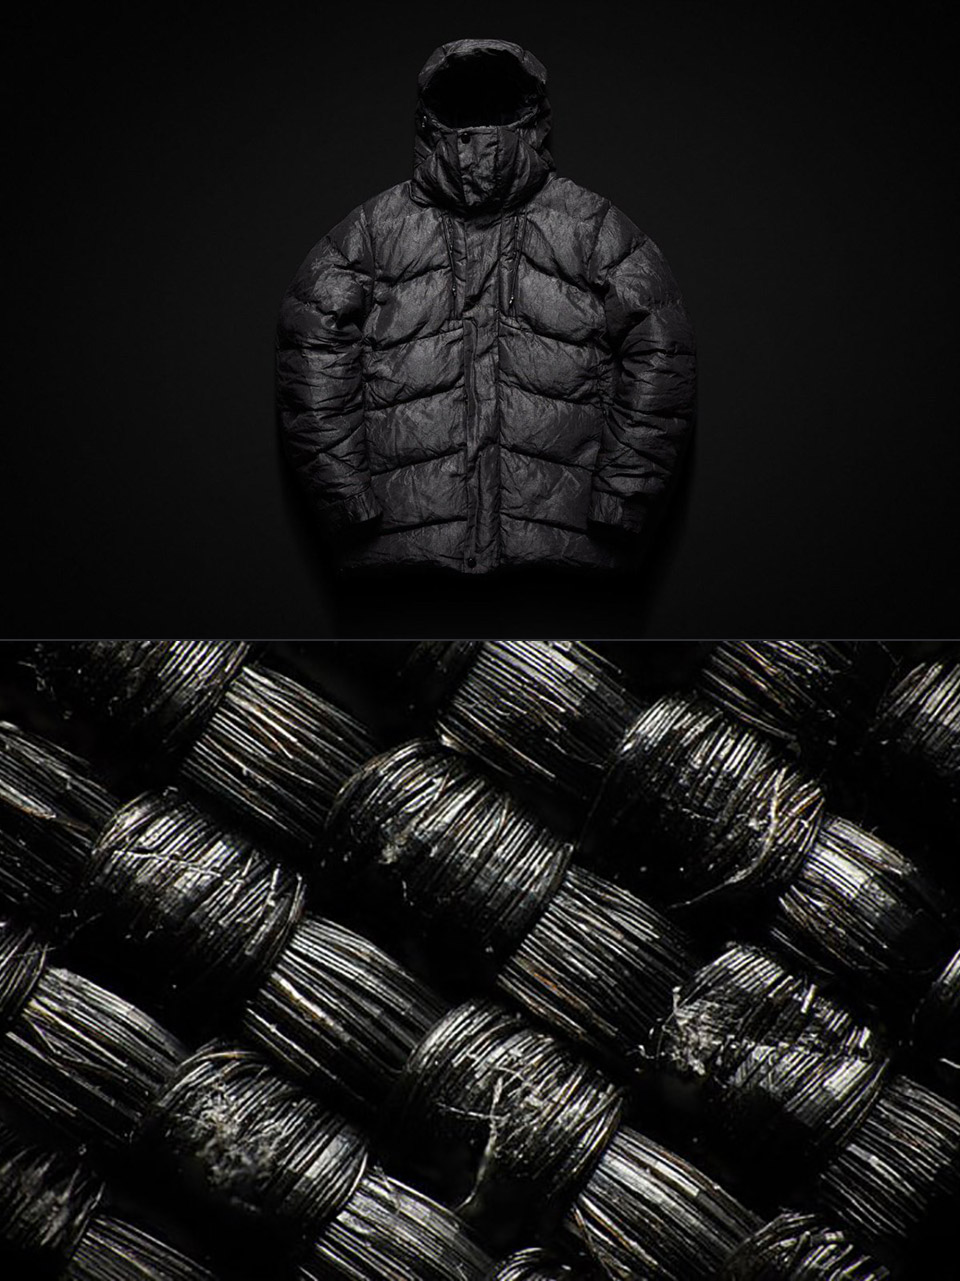 Vollebak Indestructible Puffer Jacket